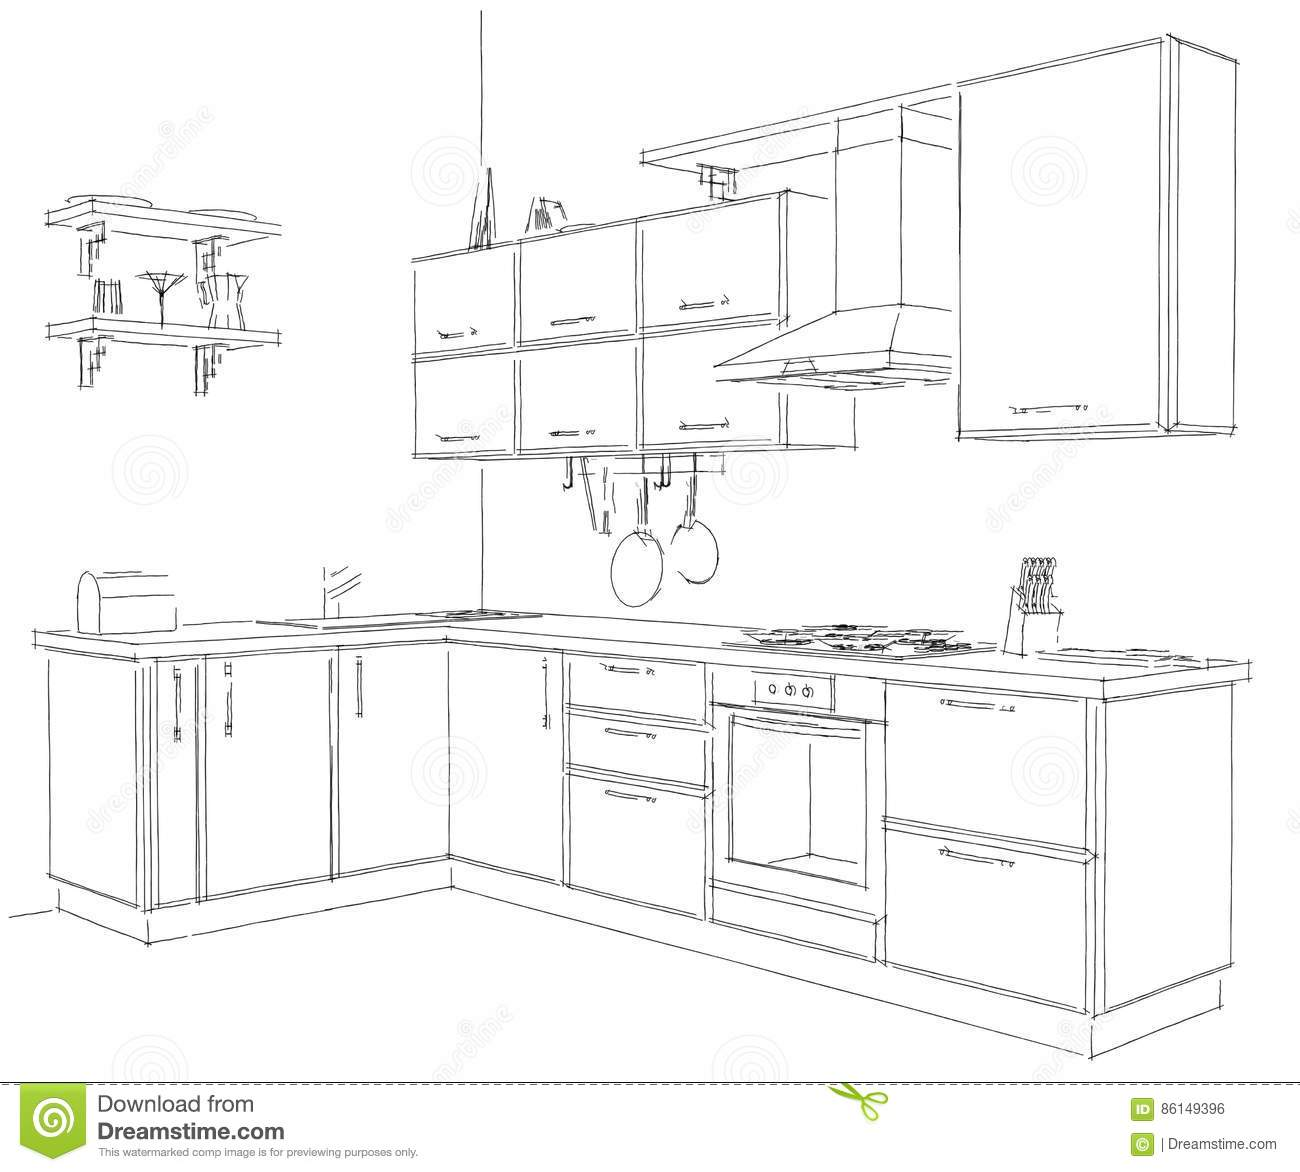 3d Sketch Small Kitchens And Islands: Contemporary Corner Kitchen Sketchy 3d Illustration. Black